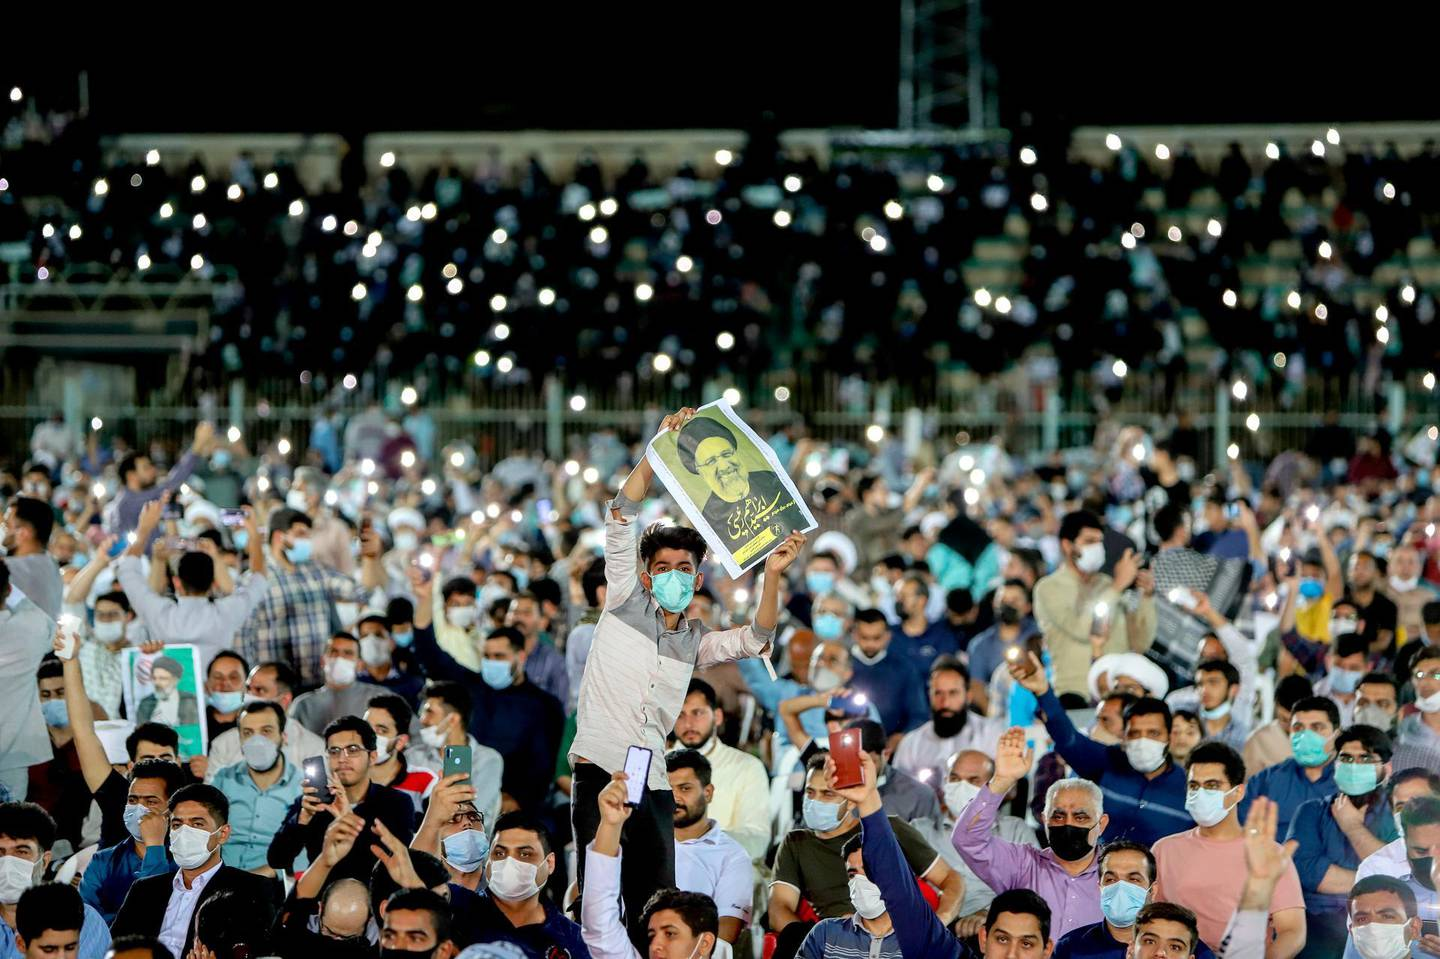 In this Wednesday, June 9, 2021 photo, a supporter of the presidential candidate Ebrahim Raisi, currently judiciary chief, hold his posters during a campaign rally at the Takhti Stadium in Ahvaz, Iran. Around 5,000 of people have gathered in a football stadium in southeastern city of Ahvaz to support the Iranian hard-line presidential candidate, Iranian media reported. (Alireza Mohammadi/ISNA via AP)